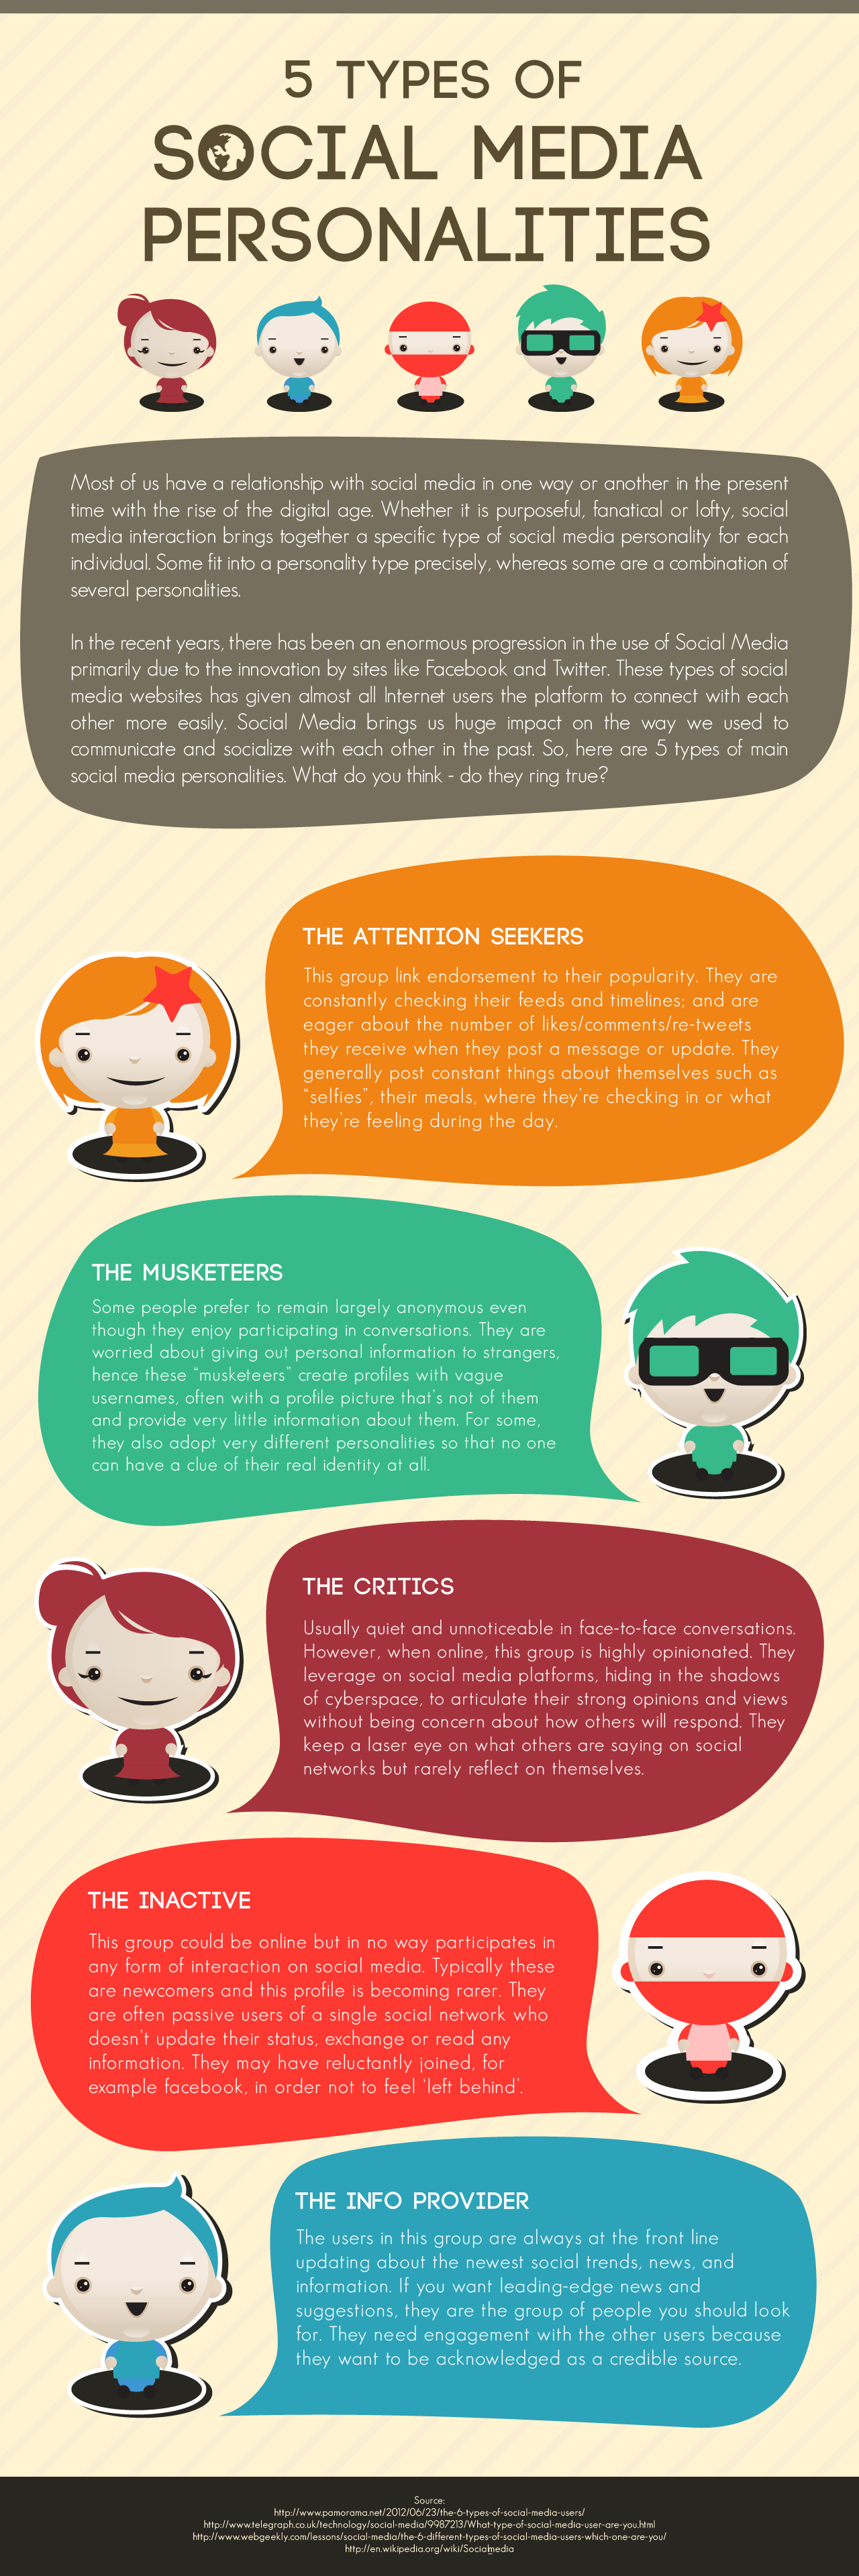 5 Types of Social Media Personalities